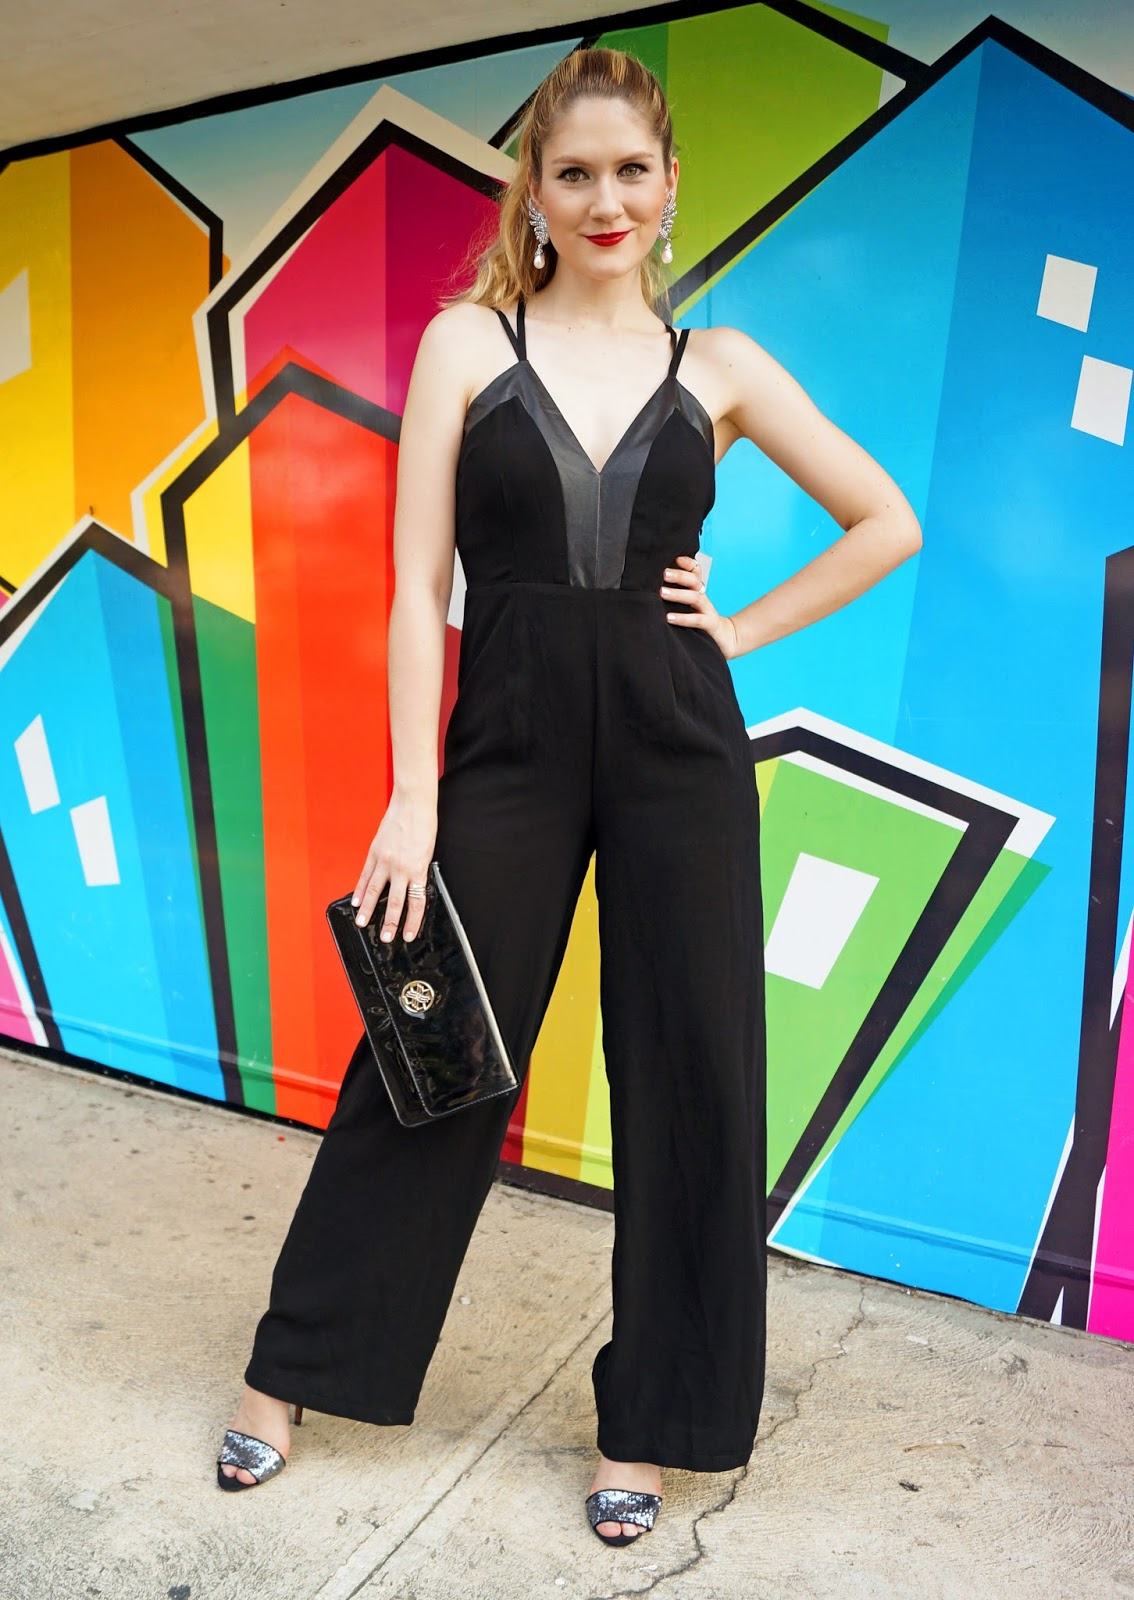 Jumpsuits are a great alternative to dresses when dressing up for al elegant event!